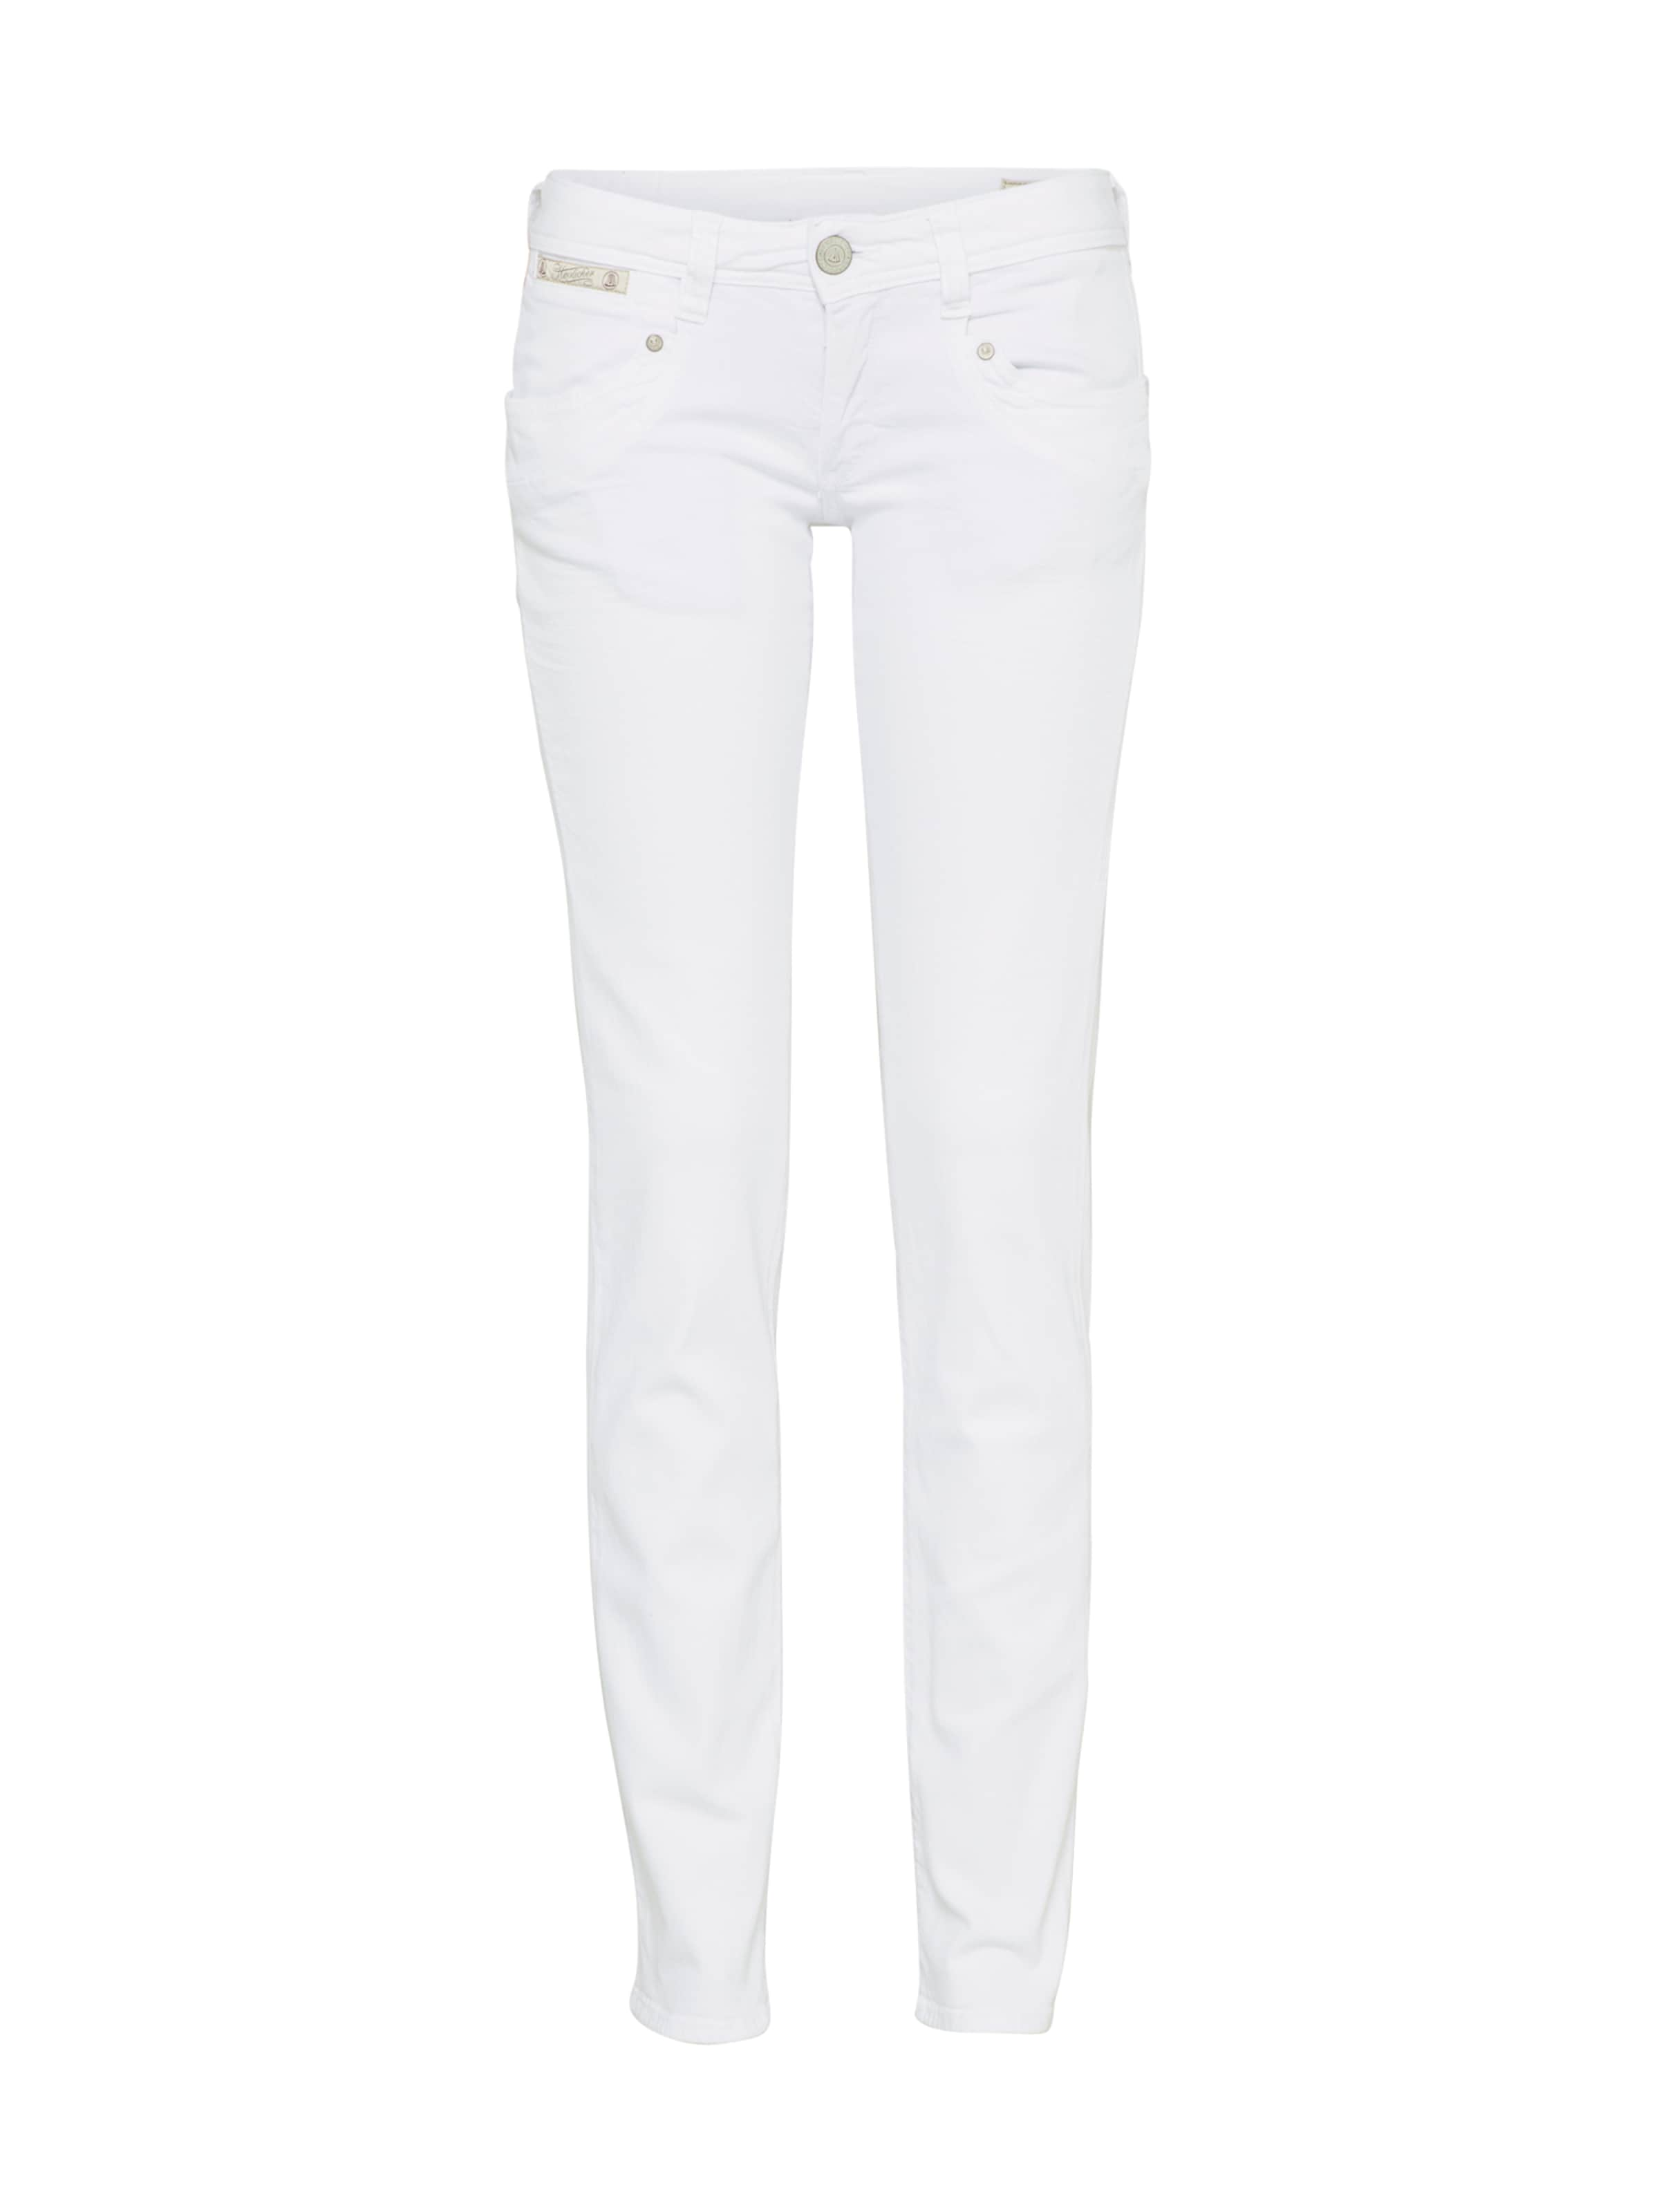 Herrlicher Denim In Slim' Jeans White 'piper gbfY7y6